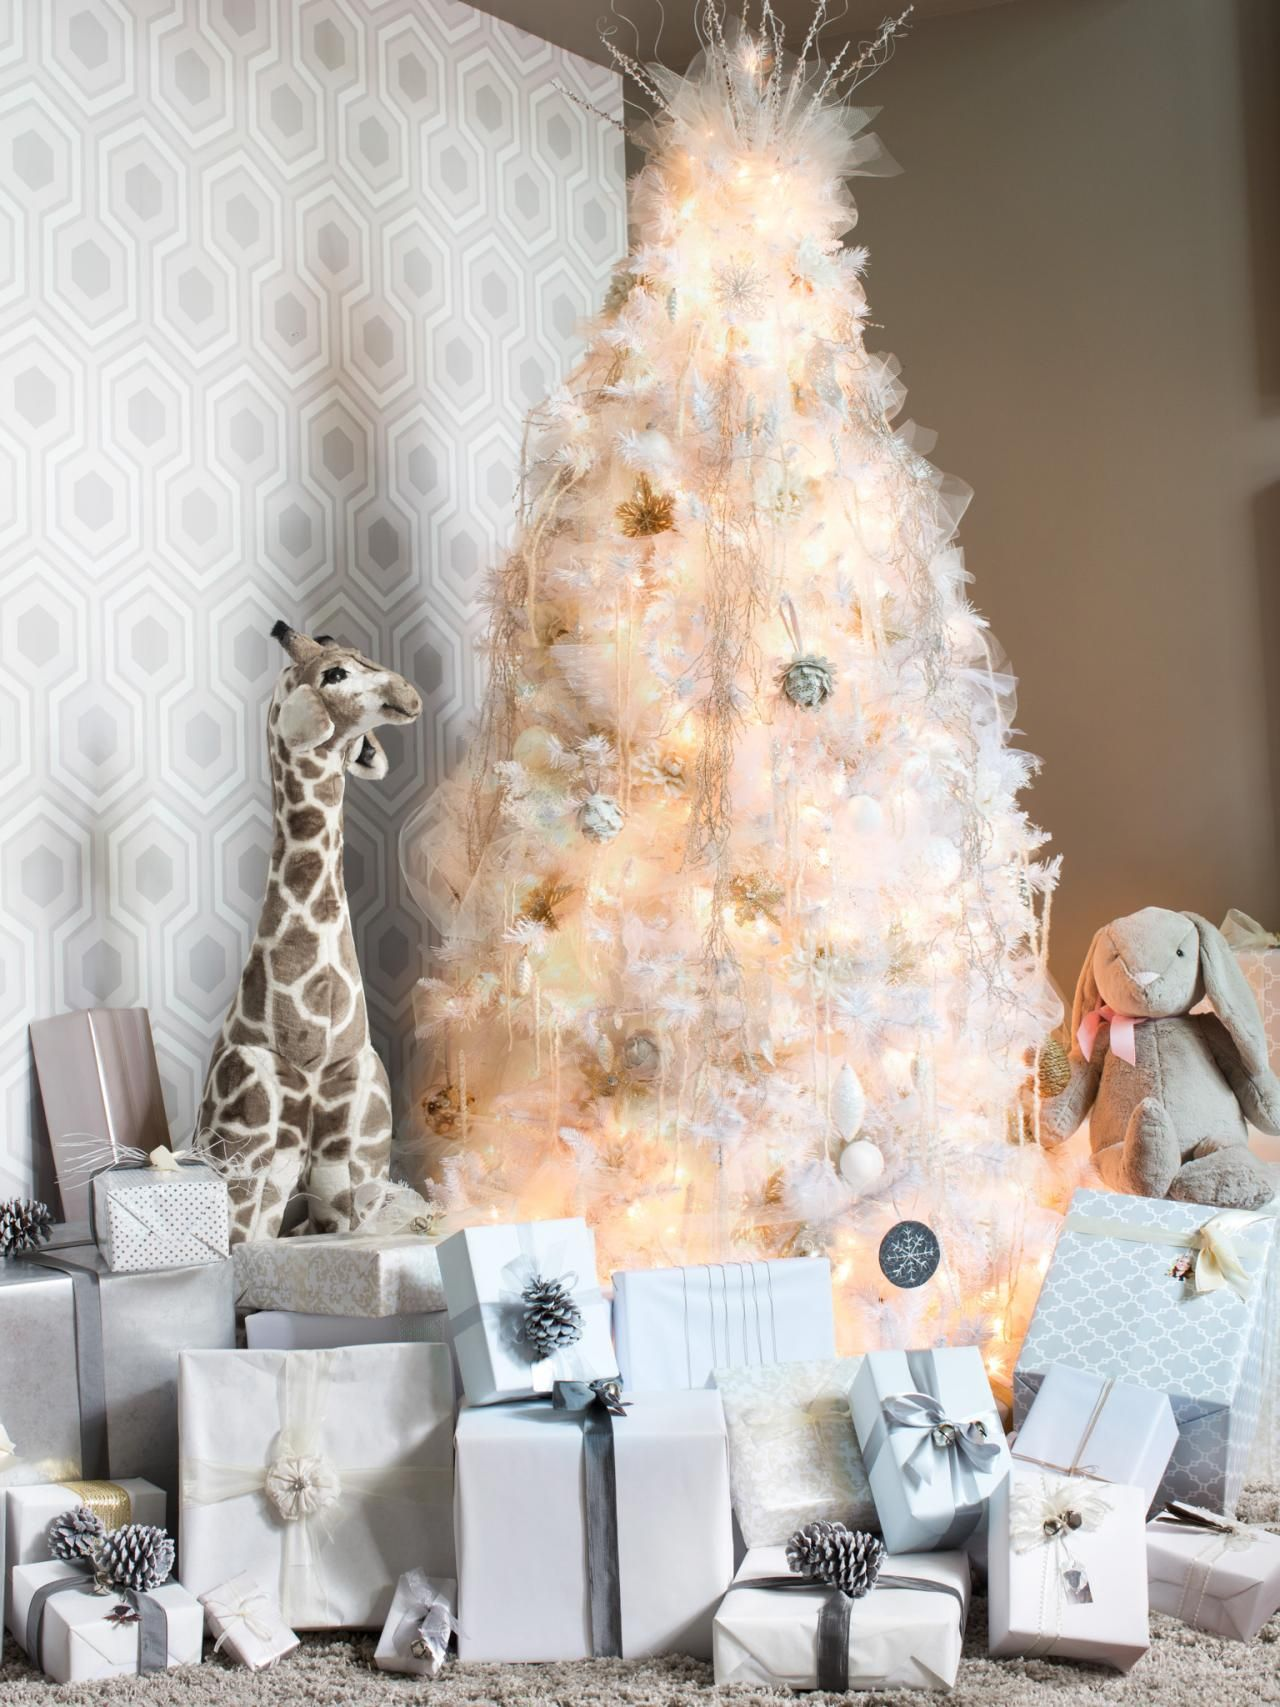 18 Christmas Tree Themes Interior Design Styles And Color Schemes For Home Decorating Hgtv